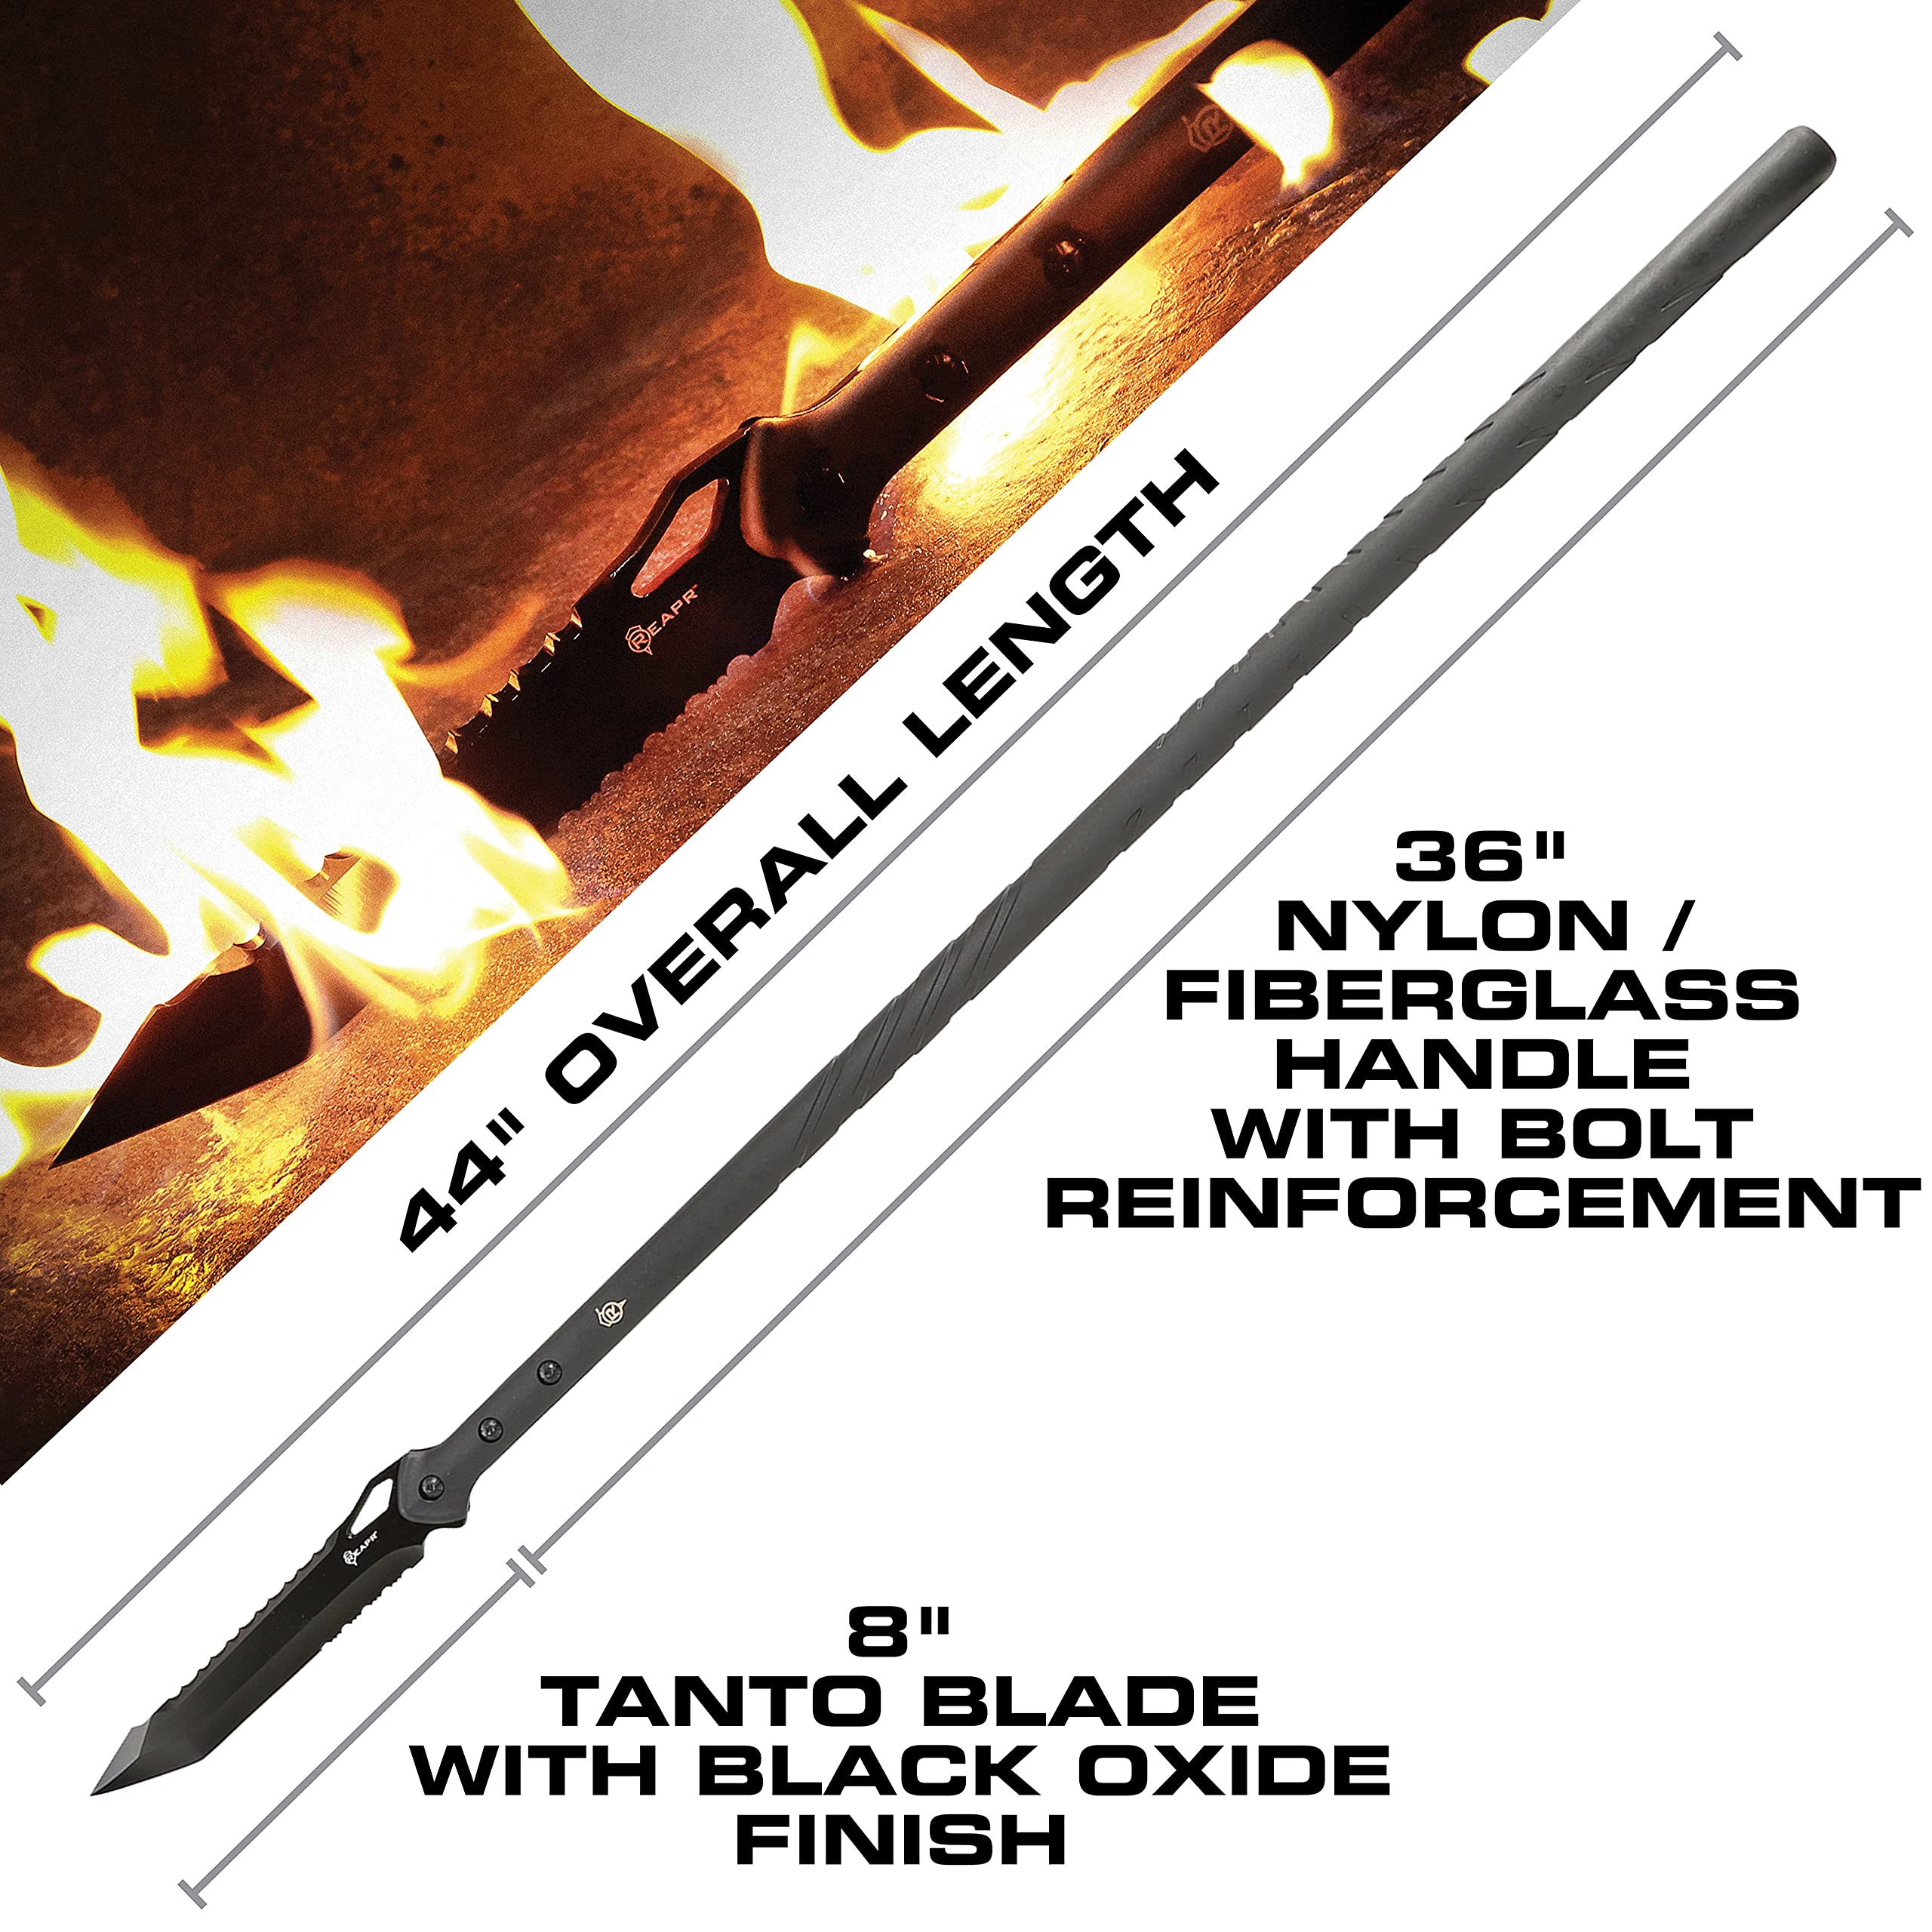 Reapr 11022 TAC Javelin Serrated Spear, Accurate Throwing Spear, Stainless Steel Survival Spear, Nylon-Fiberglass Tactical Spear Handle, Hunting Spear